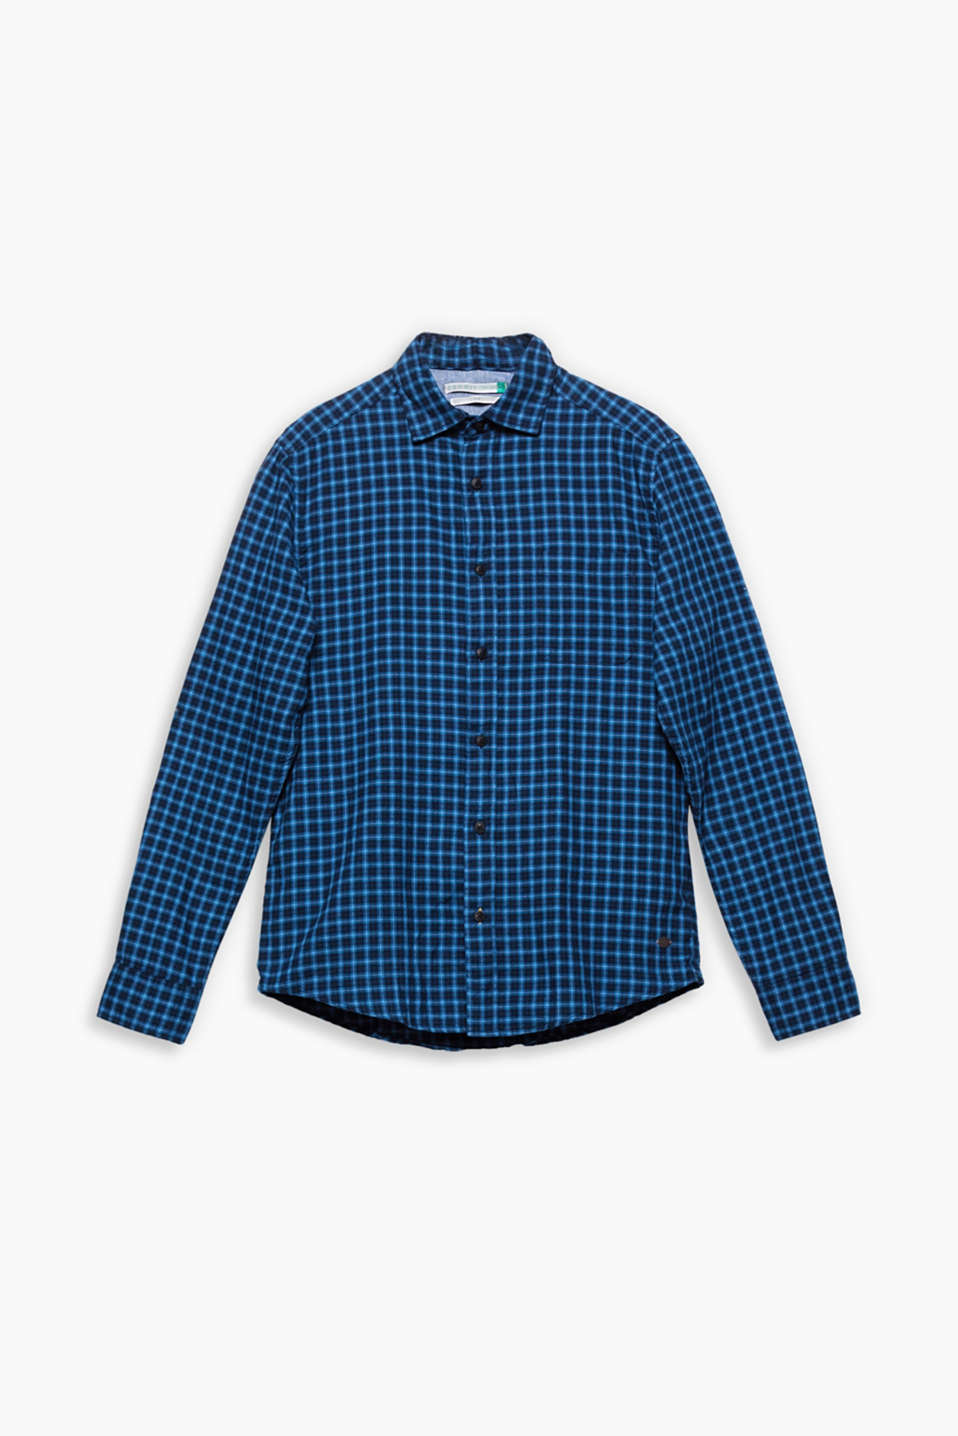 For rustic country looks or casual grunge style: the small check pattern gives this shirt its cool look.